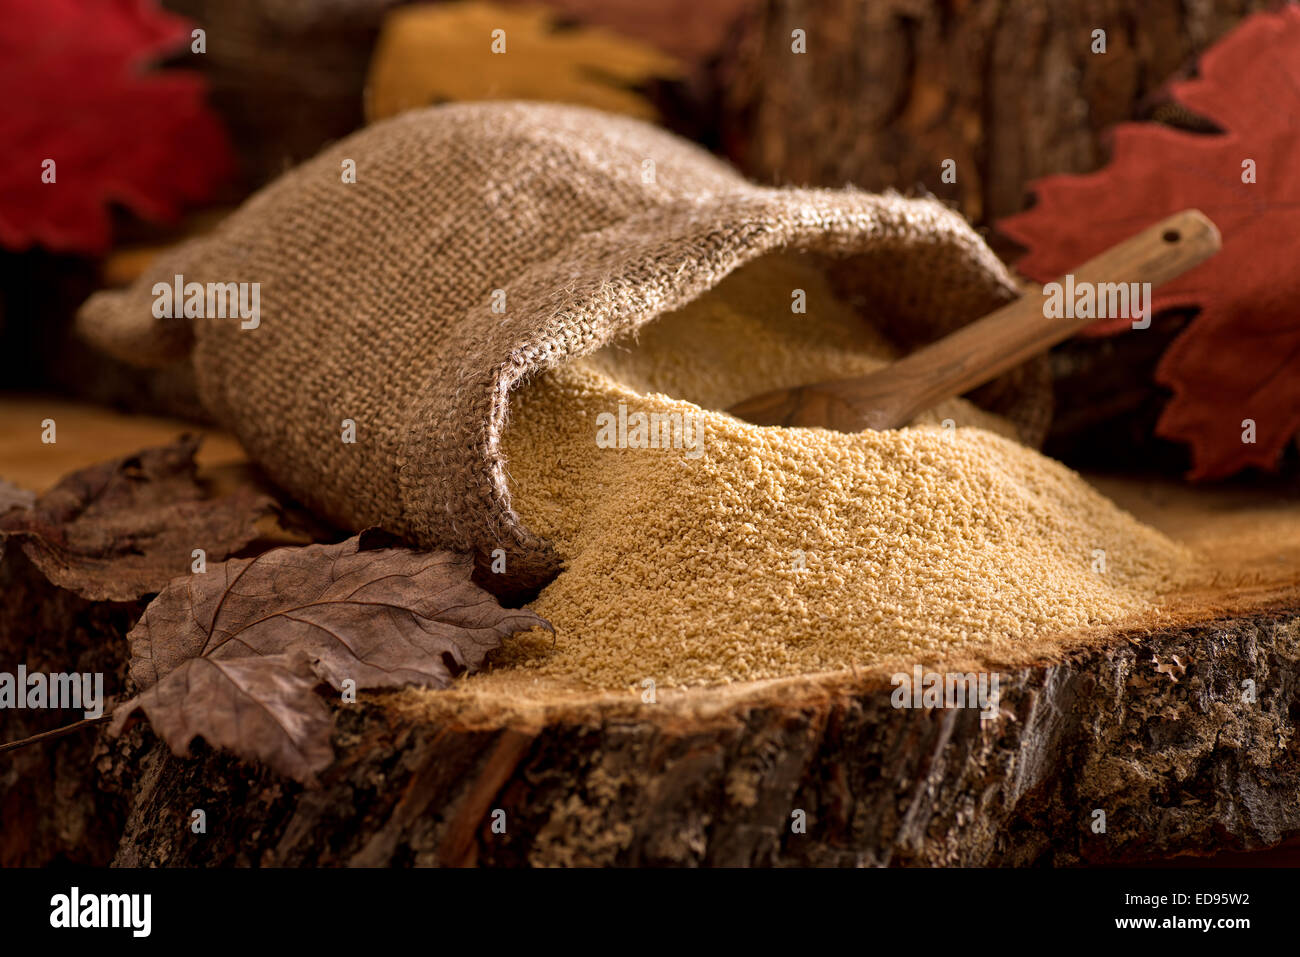 A burlap bag of delicious natural maple sugar in a maple forest setting. - Stock Image